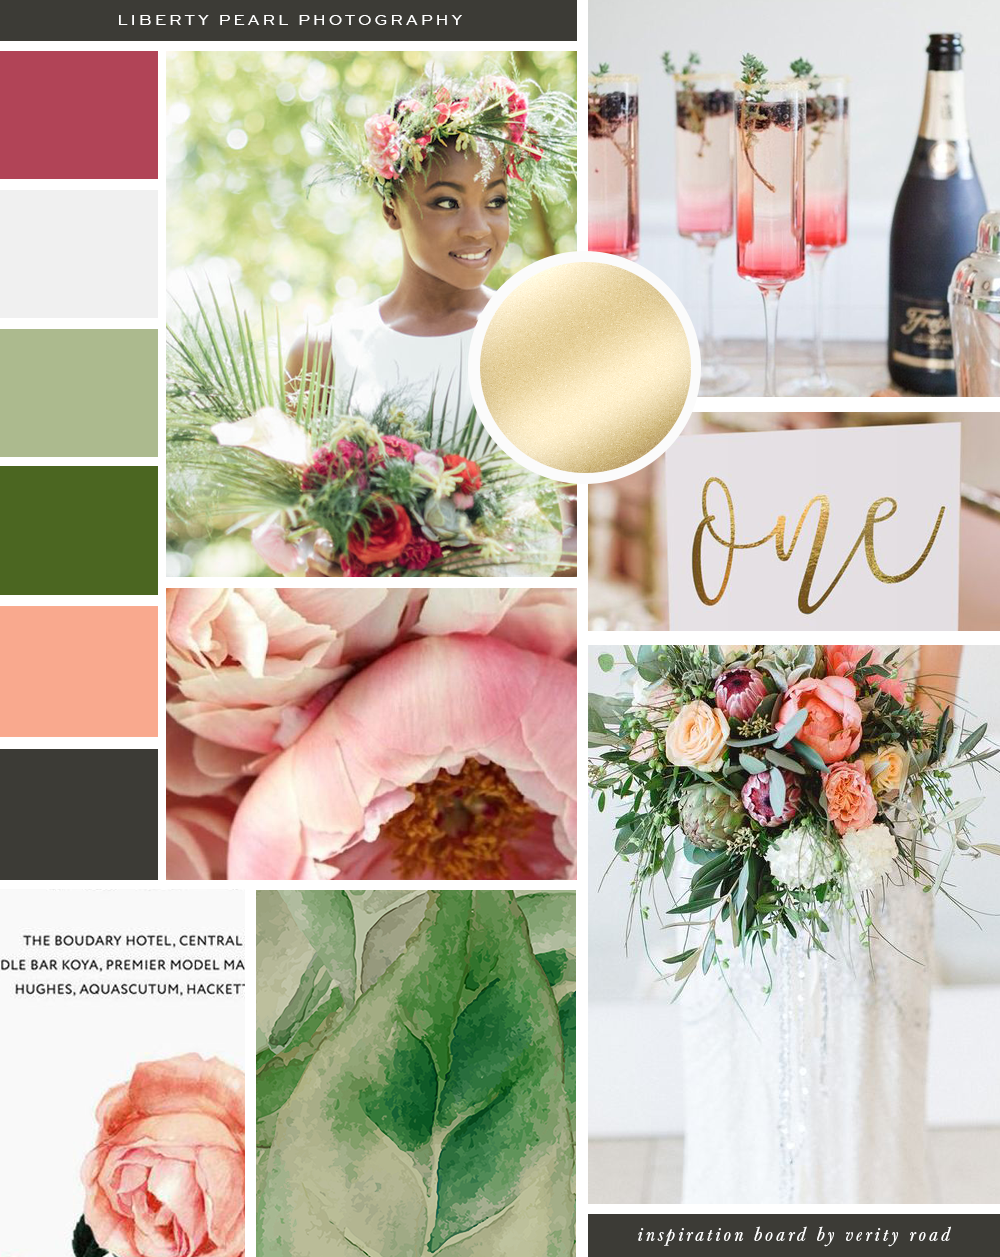 Mood board for Liberty pearl photography, wedding photographer, destination weddings, wedding professionals, bridal business, wedding business,luxury feminine brand styling and web design for female entrepreneurs. exotic branding, Inspiration board of typography, calligraphy script font, serif, green, sage, brown, deep red, coral, bright color palette, wedding stylist, wedding industry, femininity, FLORAL pattern, business owner, blogger. See more for brand board, brand style guide,.